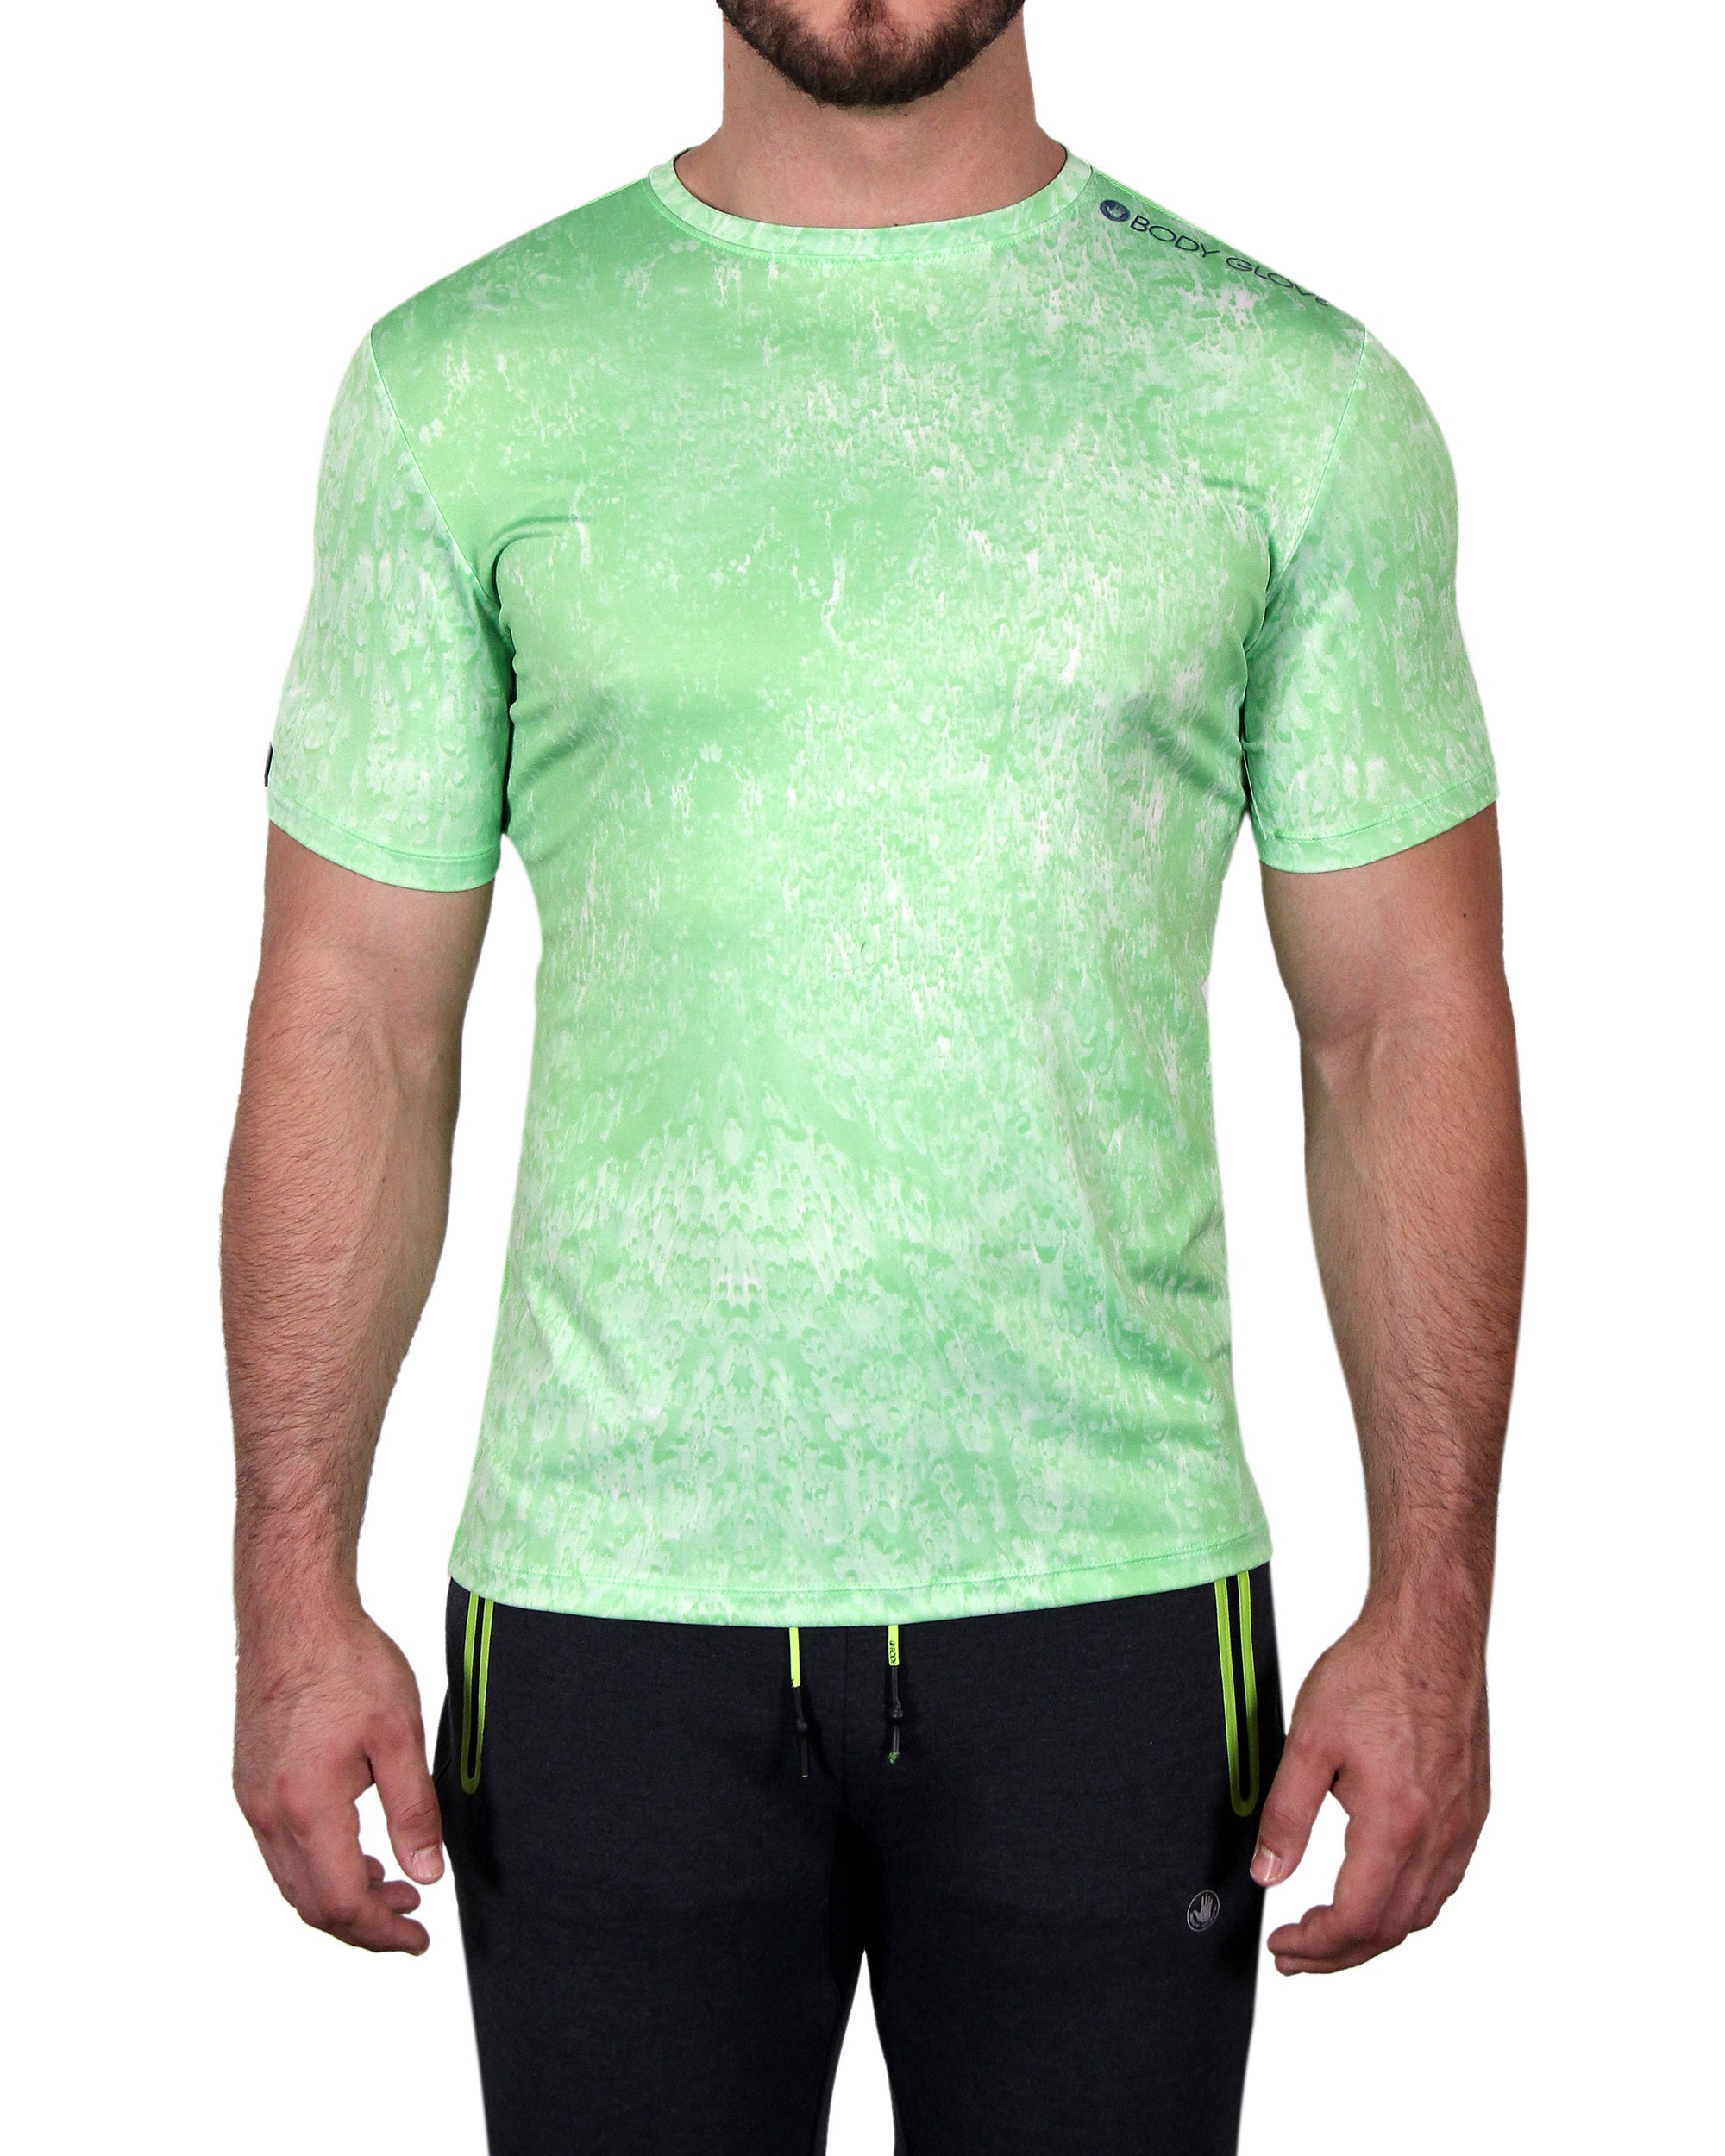 Men's Performance T-Shirt - Green